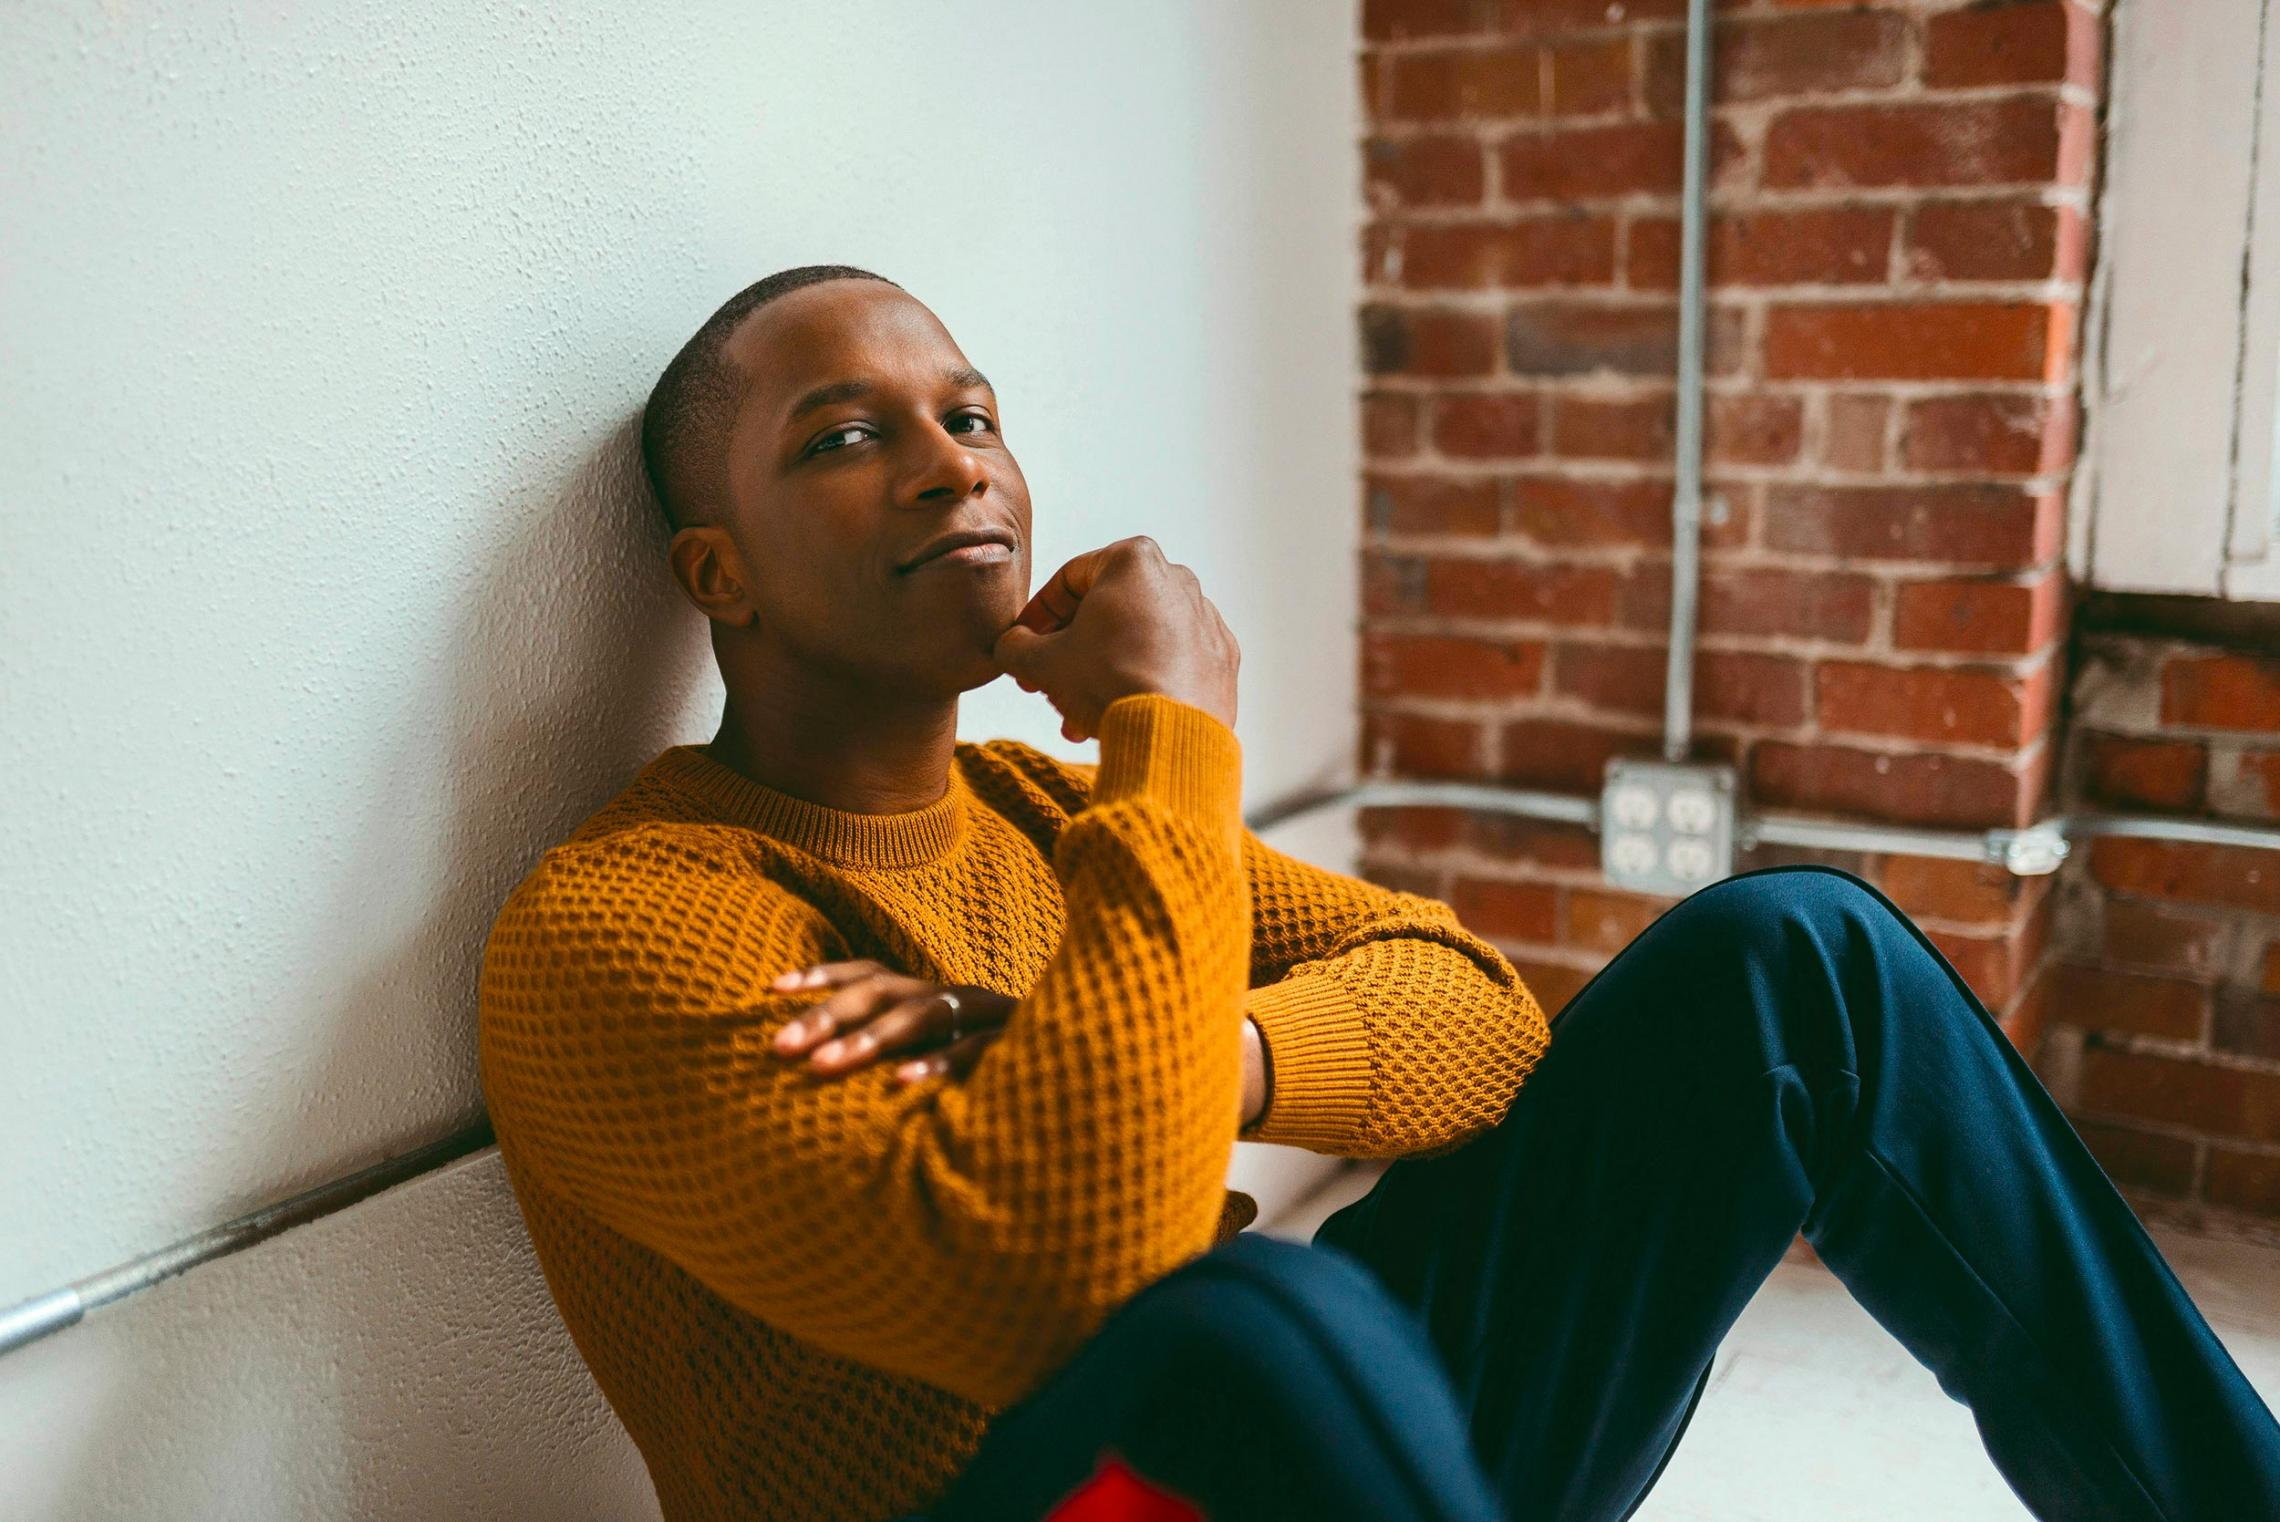 Leslie Odom Jr. will speak Jan. 19 at UVA's John Paul Jones Arena. (Contributed photo)